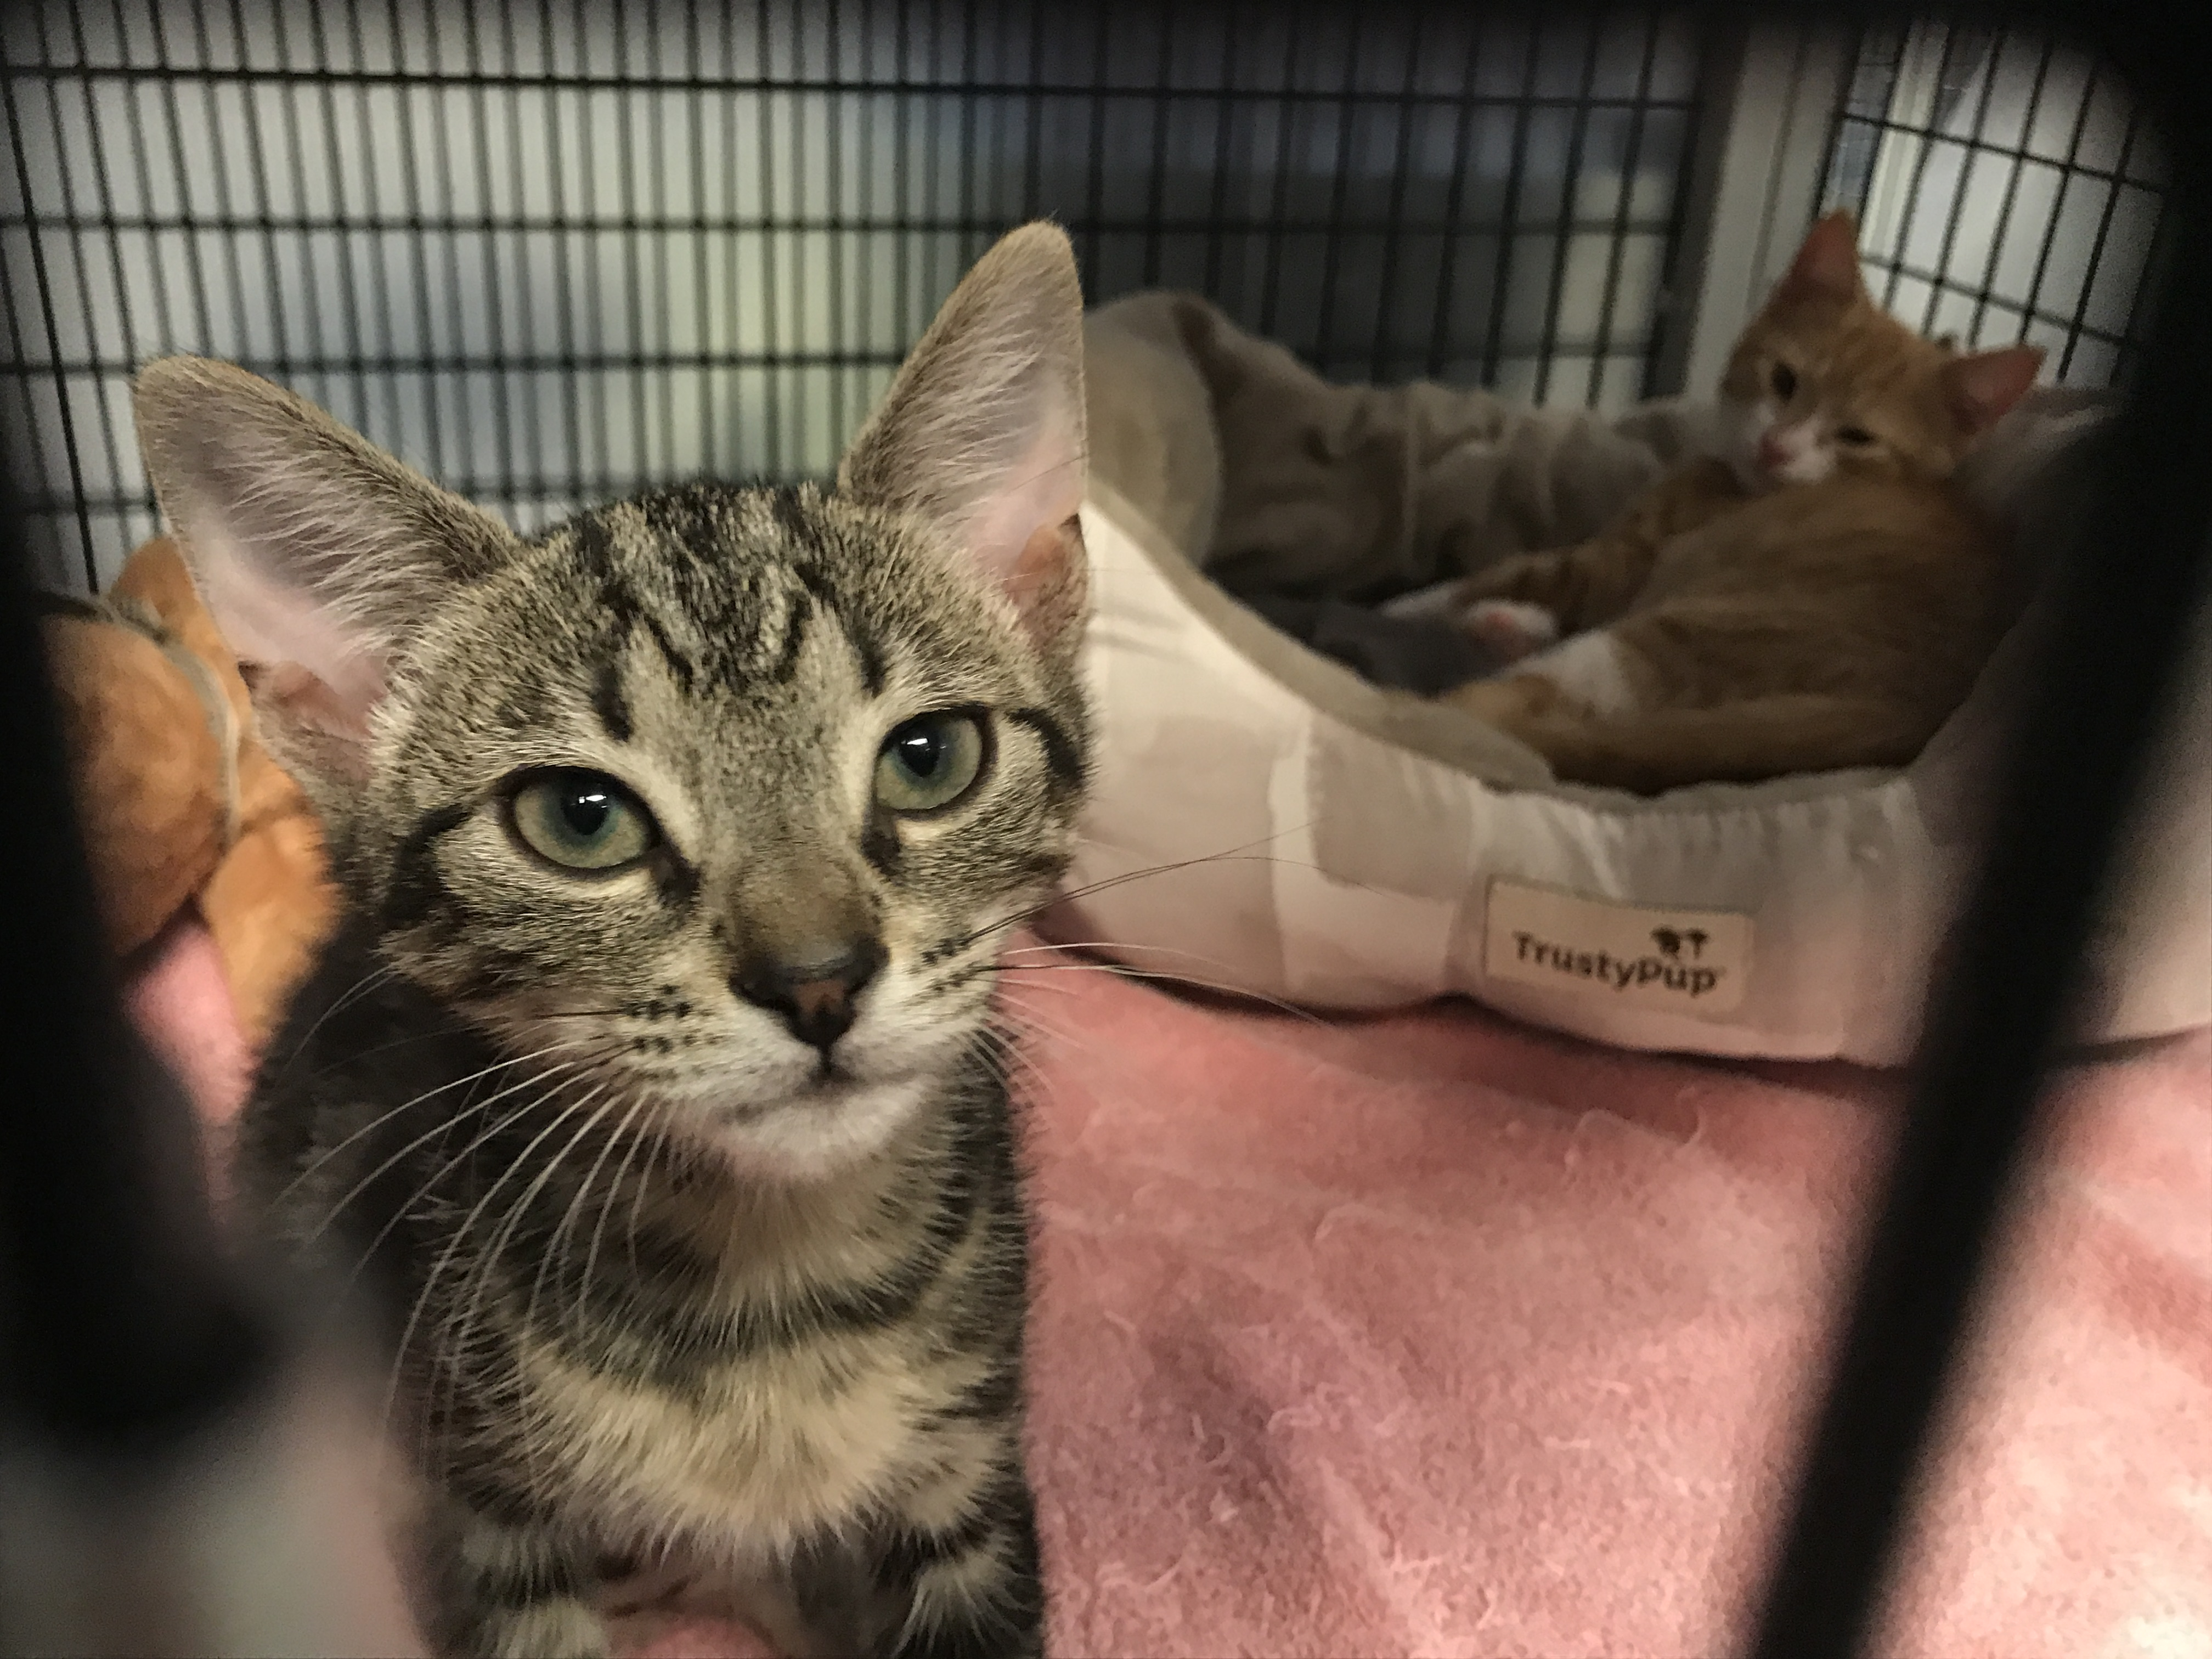 <div class='meta'><div class='origin-logo' data-origin='none'></div><span class='caption-text' data-credit='Credit: Safe Haven for Cats'>Yarmouth</span></div>